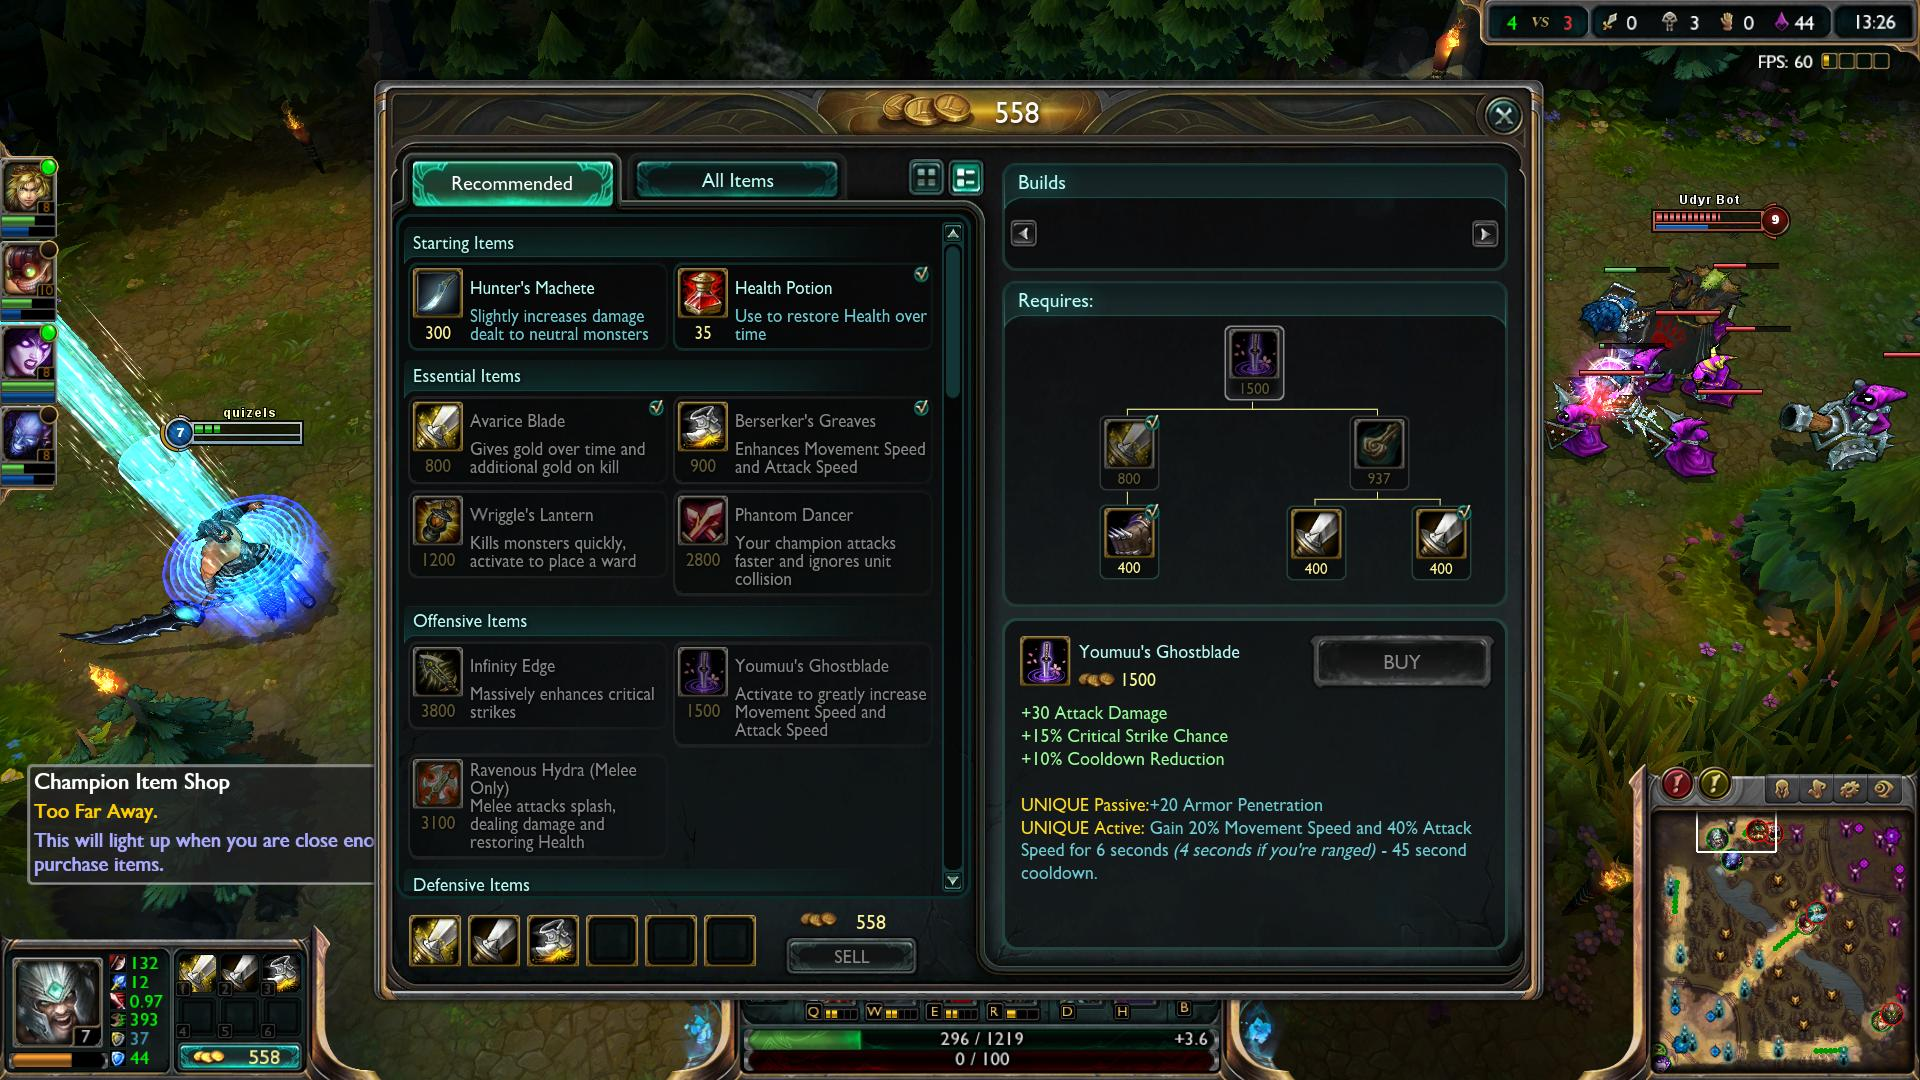 lol Youmuu\'s Ghostblade item lol screenshot.